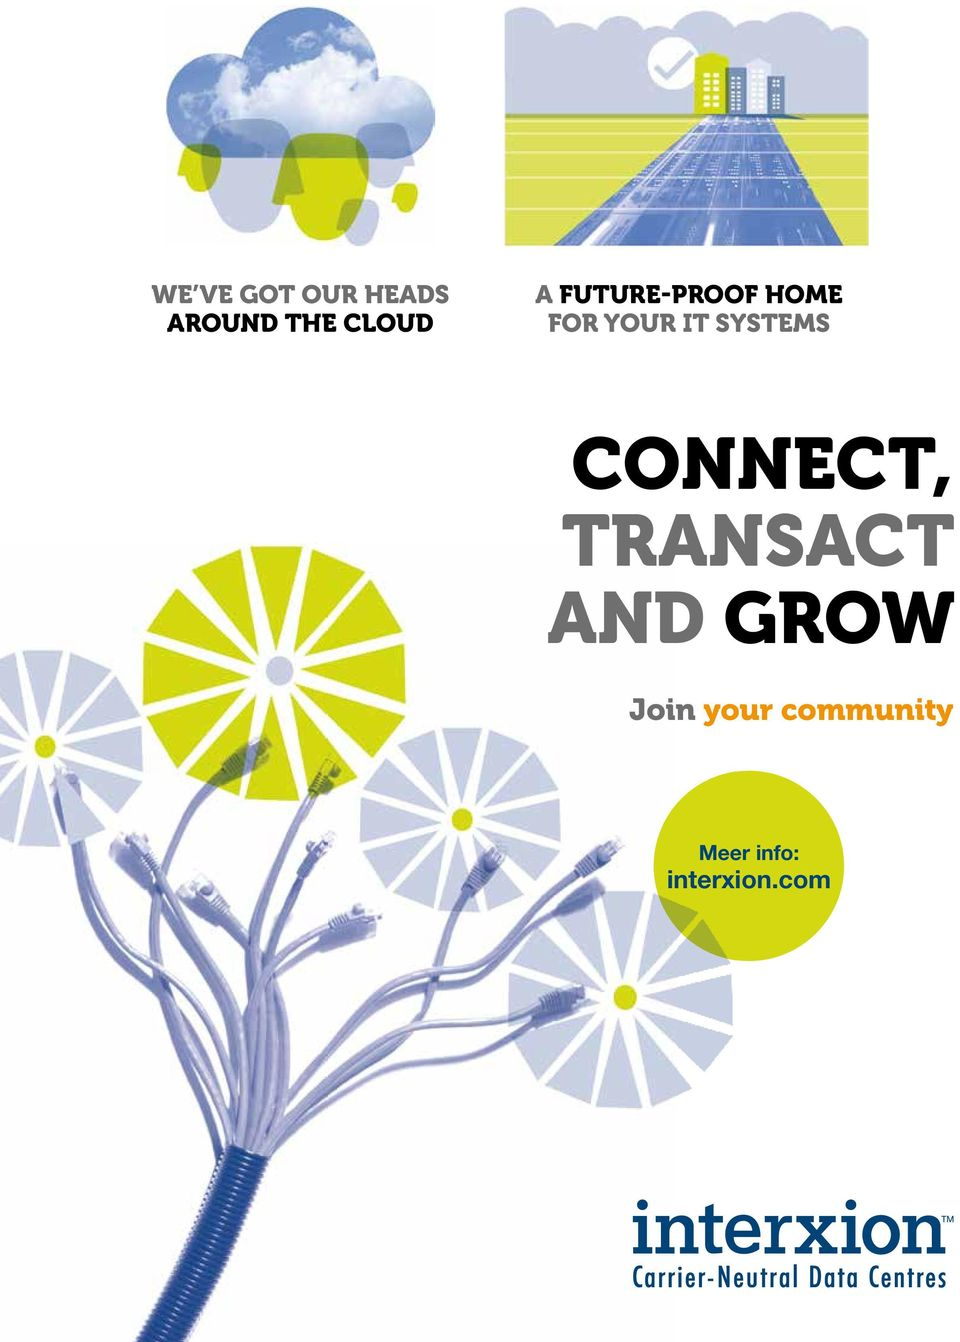 SYSTEMS CONNECT, TRANSACT AND GROW